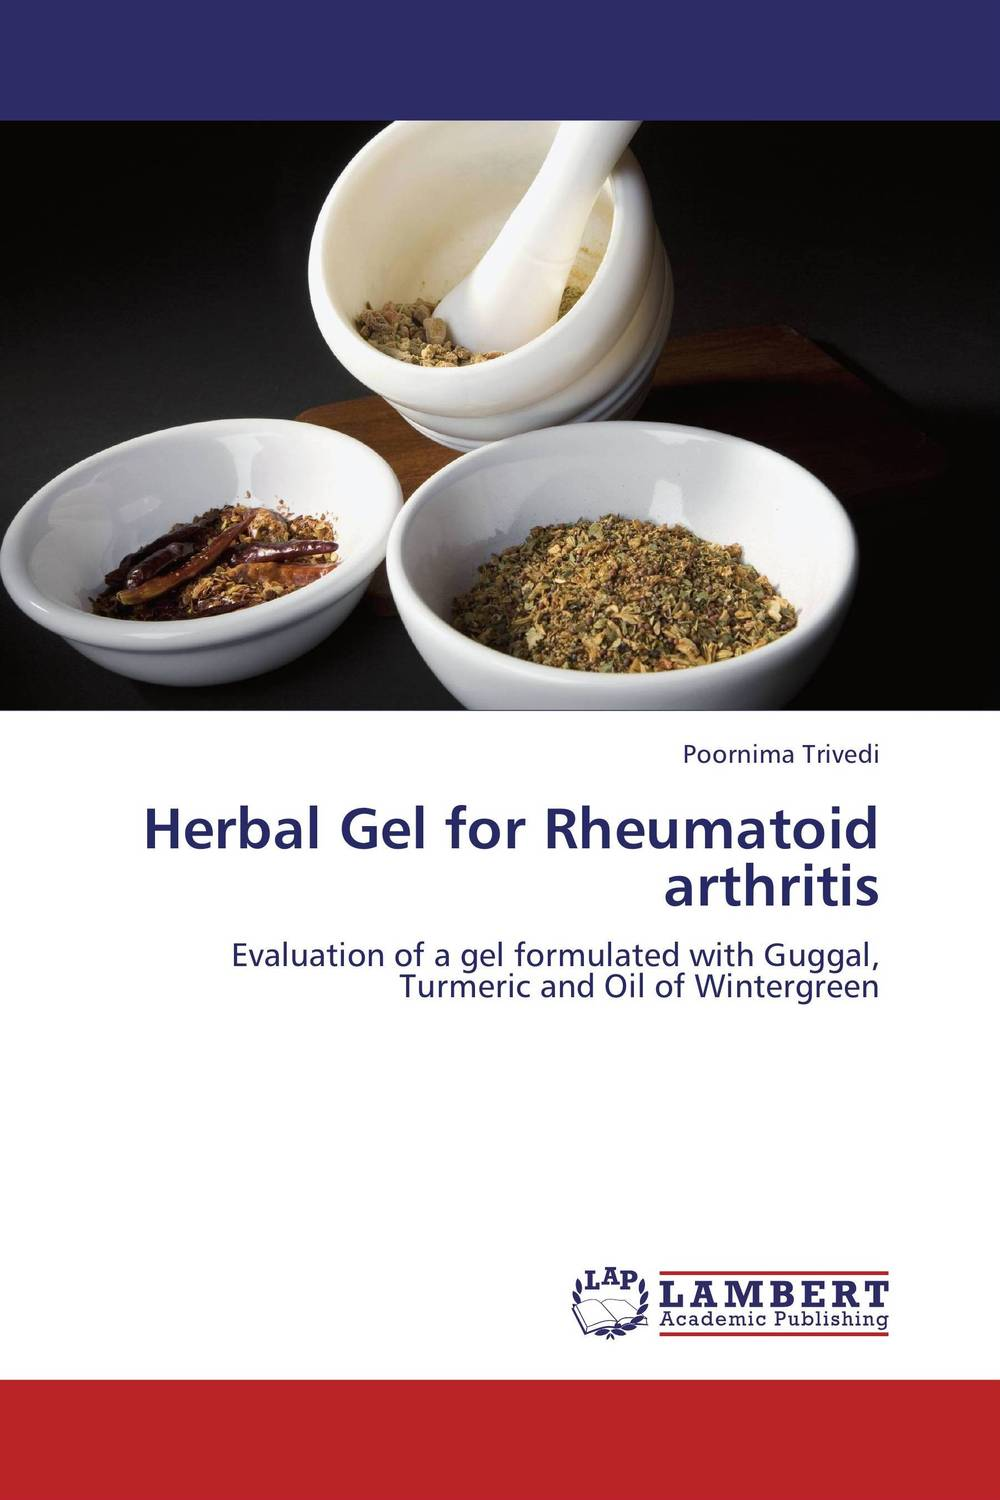 Herbal Gel for Rheumatoid arthritis